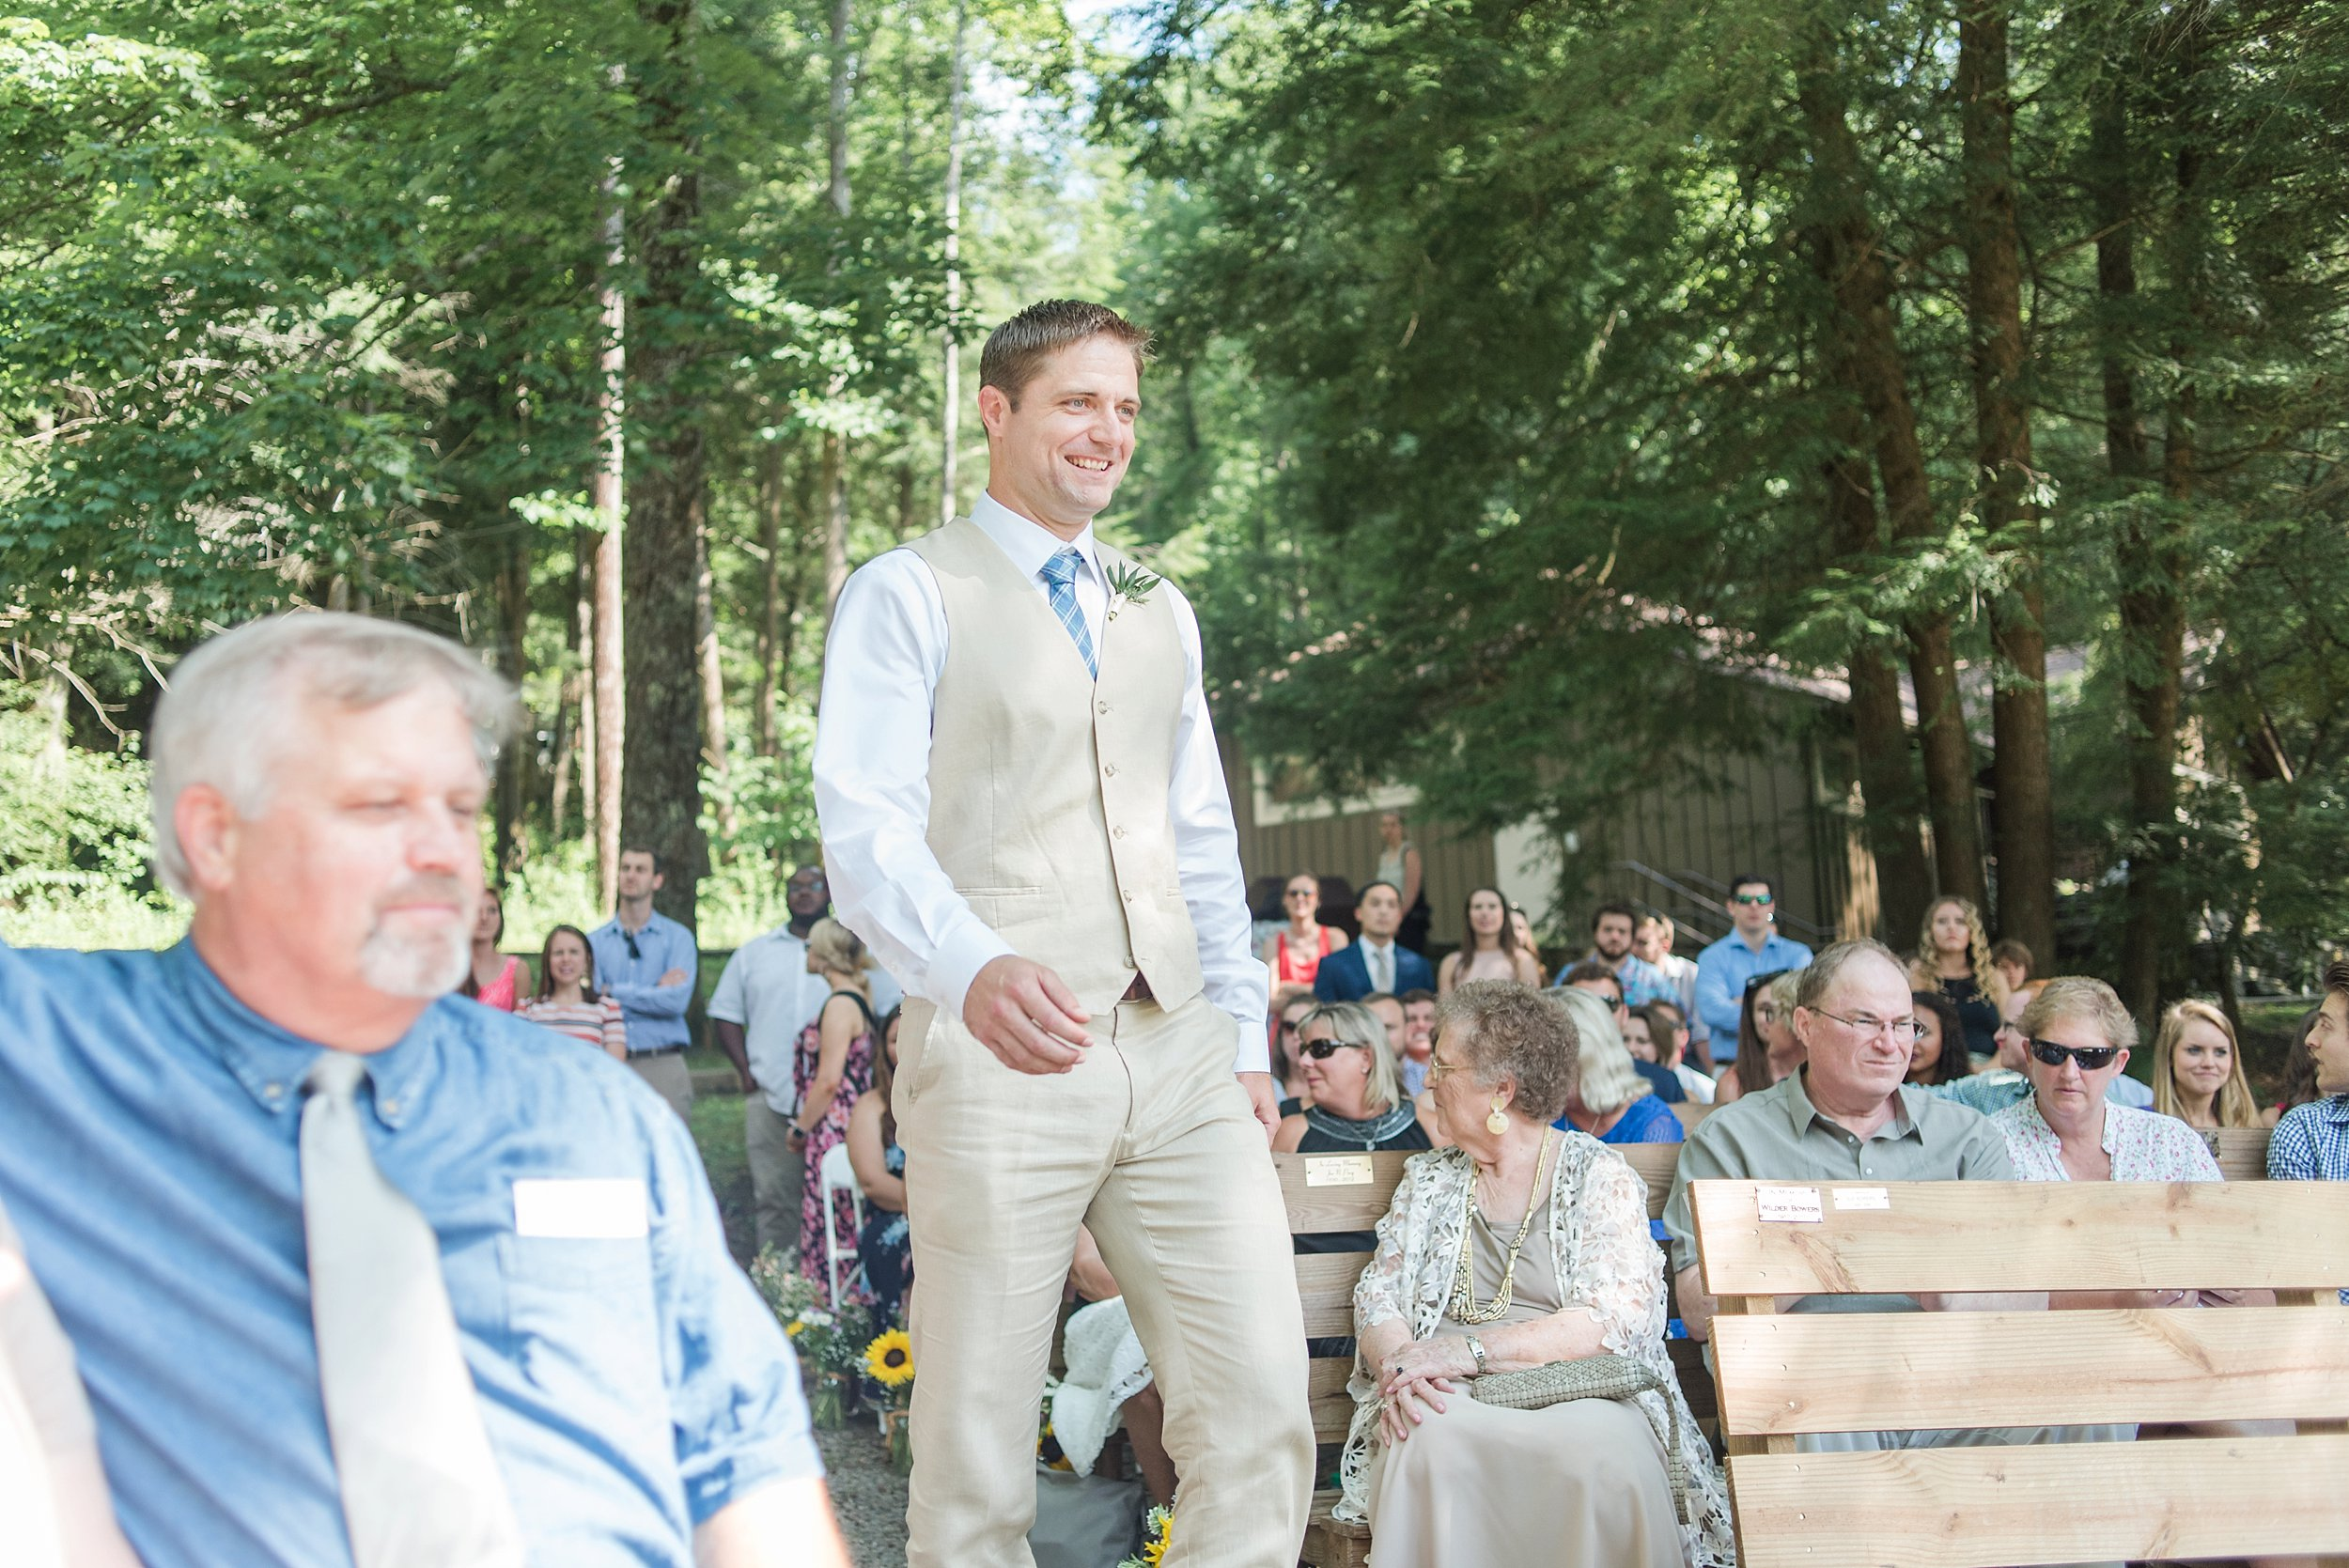 I loved that during the ceremony, the officiant had Ethan stand faced away until right when Becky walked down. That way when she was just in the right place, she was perfectly in view for when he first saw her.